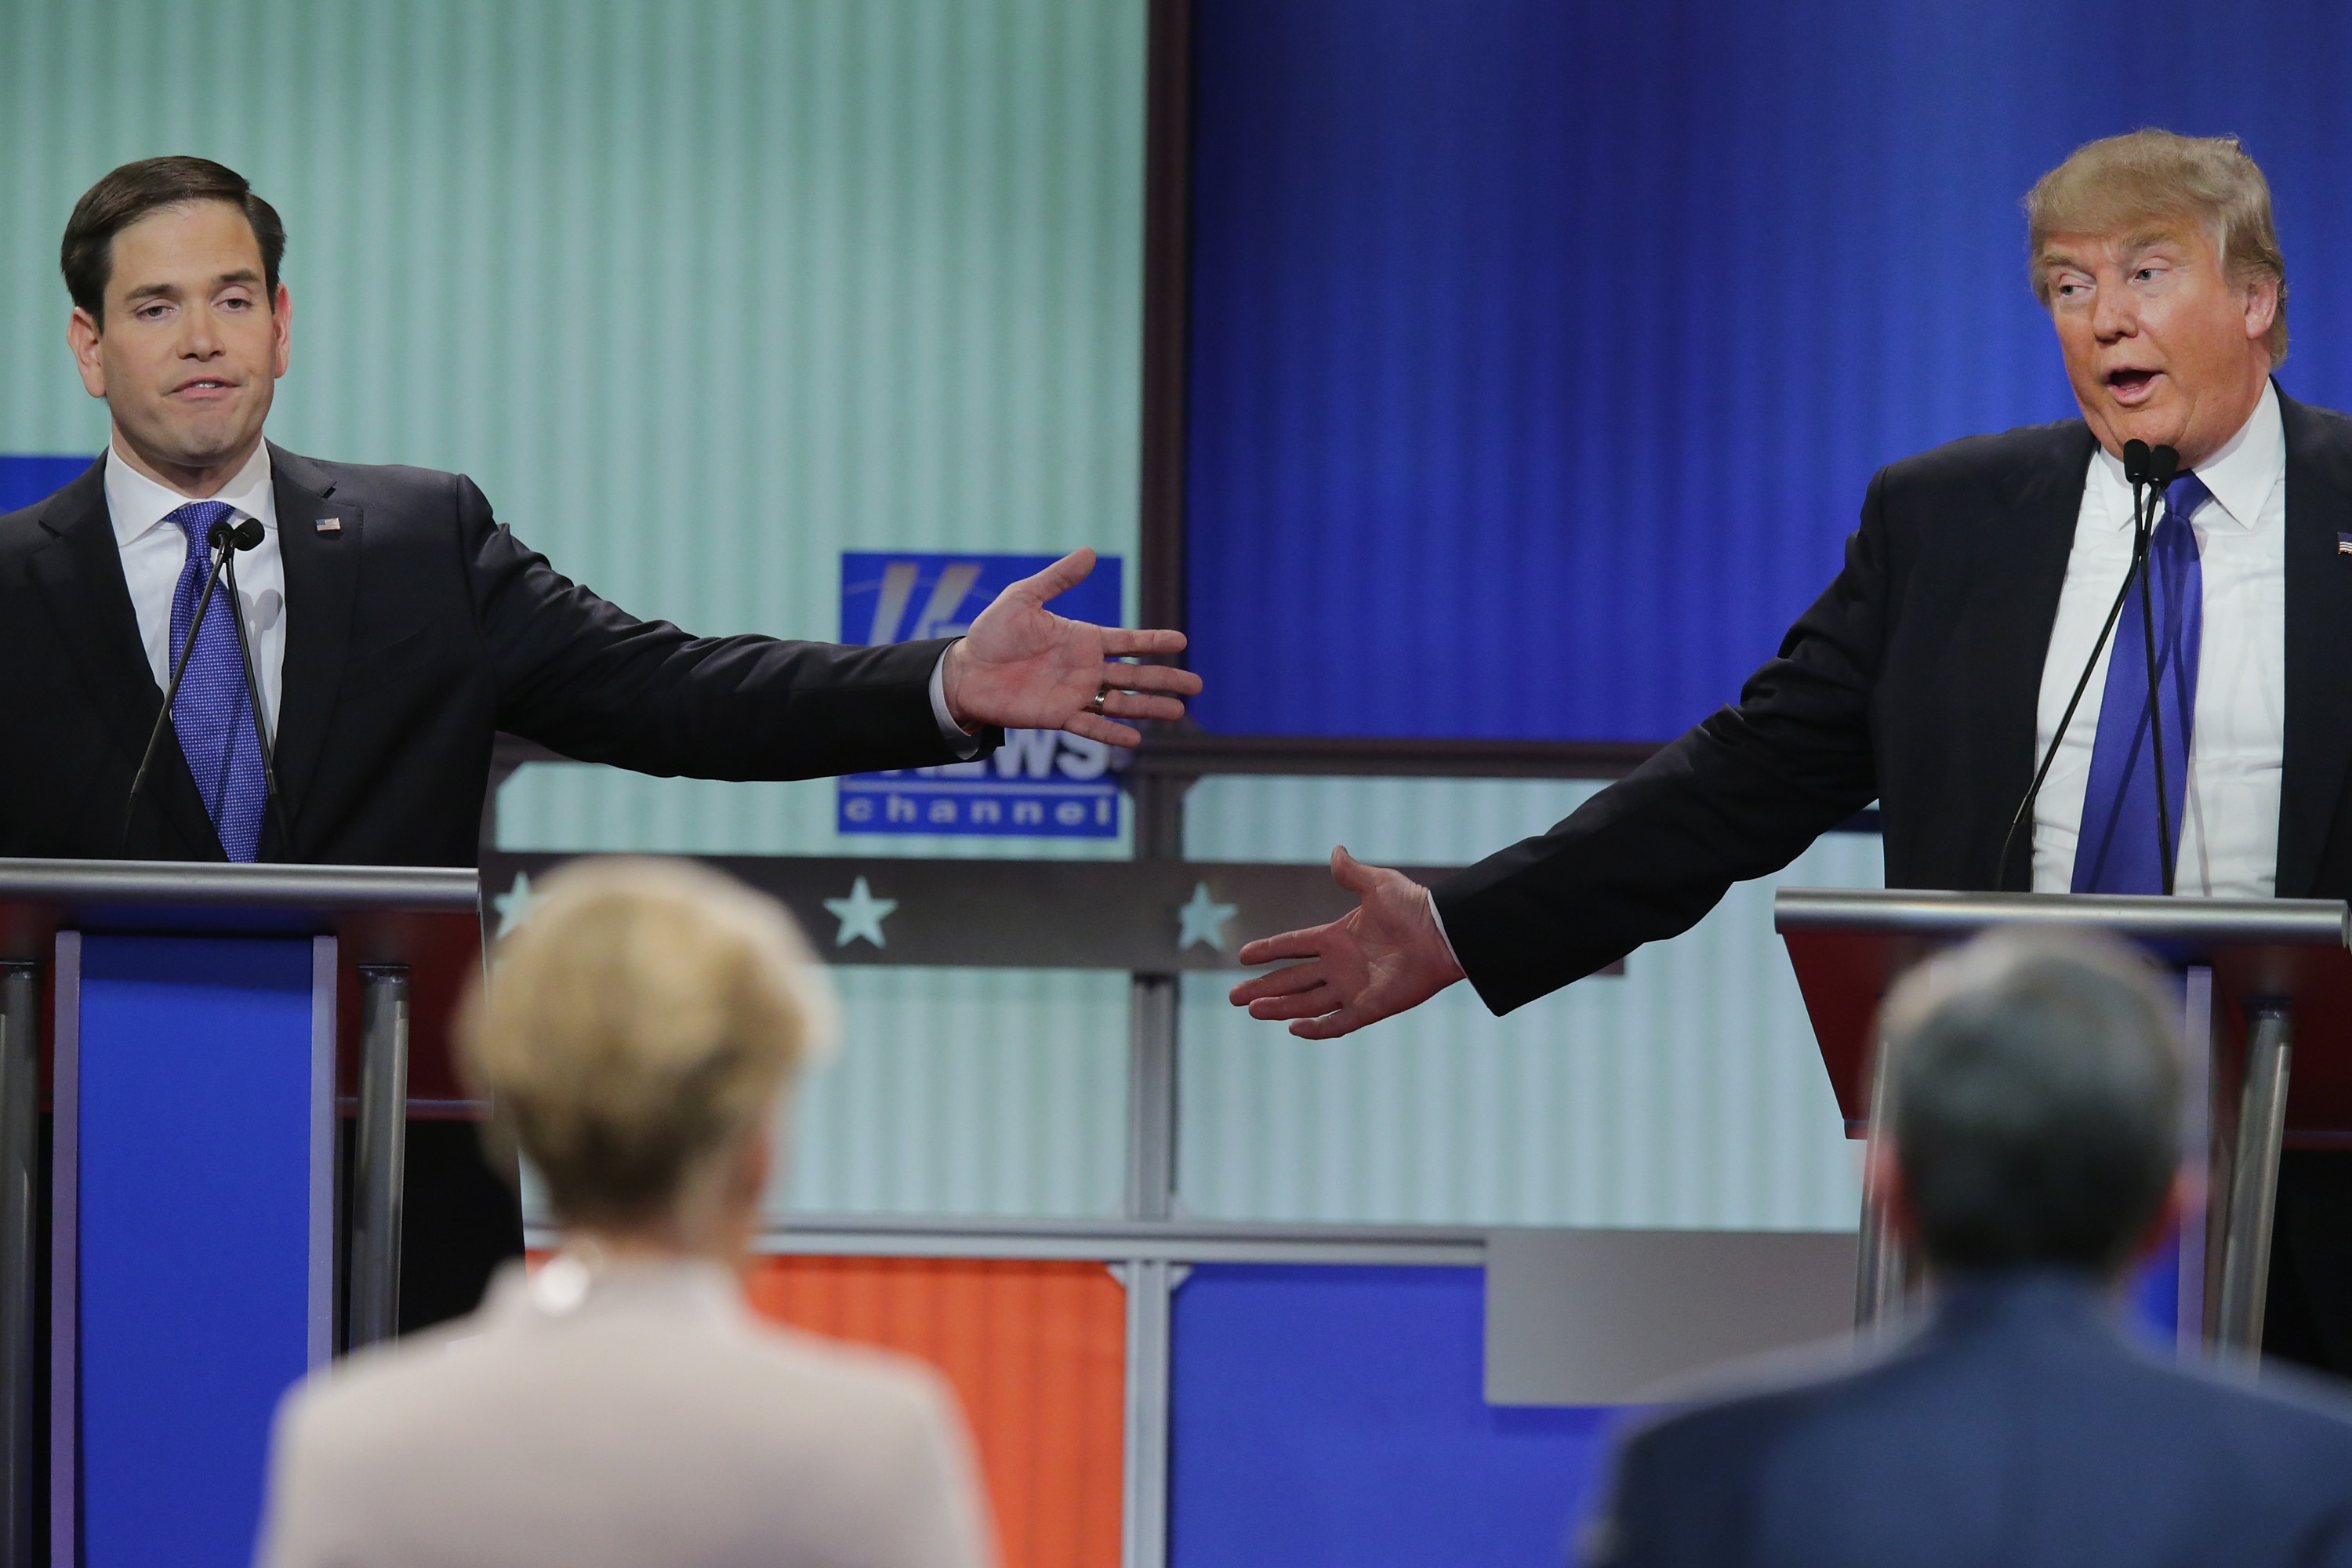 Republican presidential candidates Sen. Marco Rubio, left, and Donald Trump square off during last week's debate in Detroit. Michigan voters head to the polls Tuesday for the state primary.